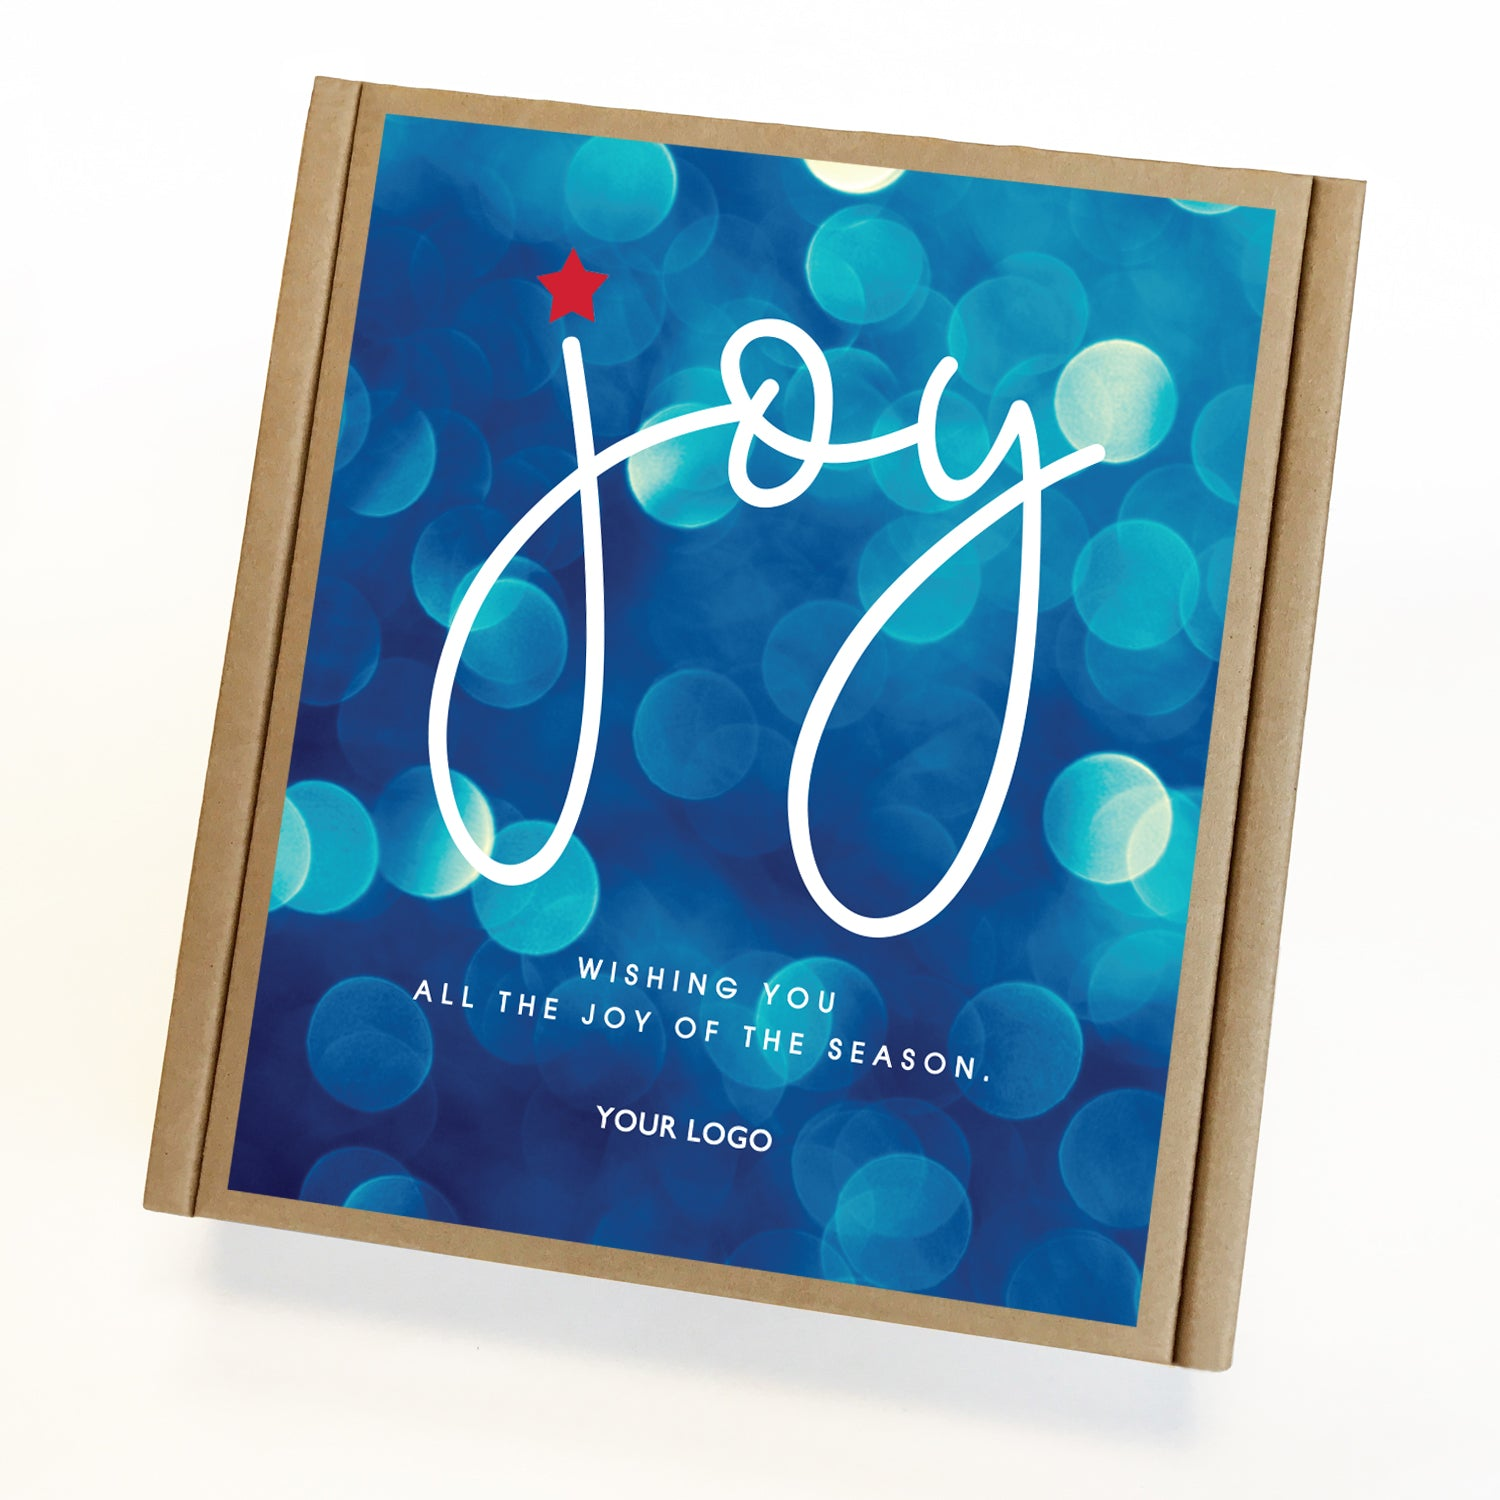 Joy Eco Custom Caramel Holiday Gift Box